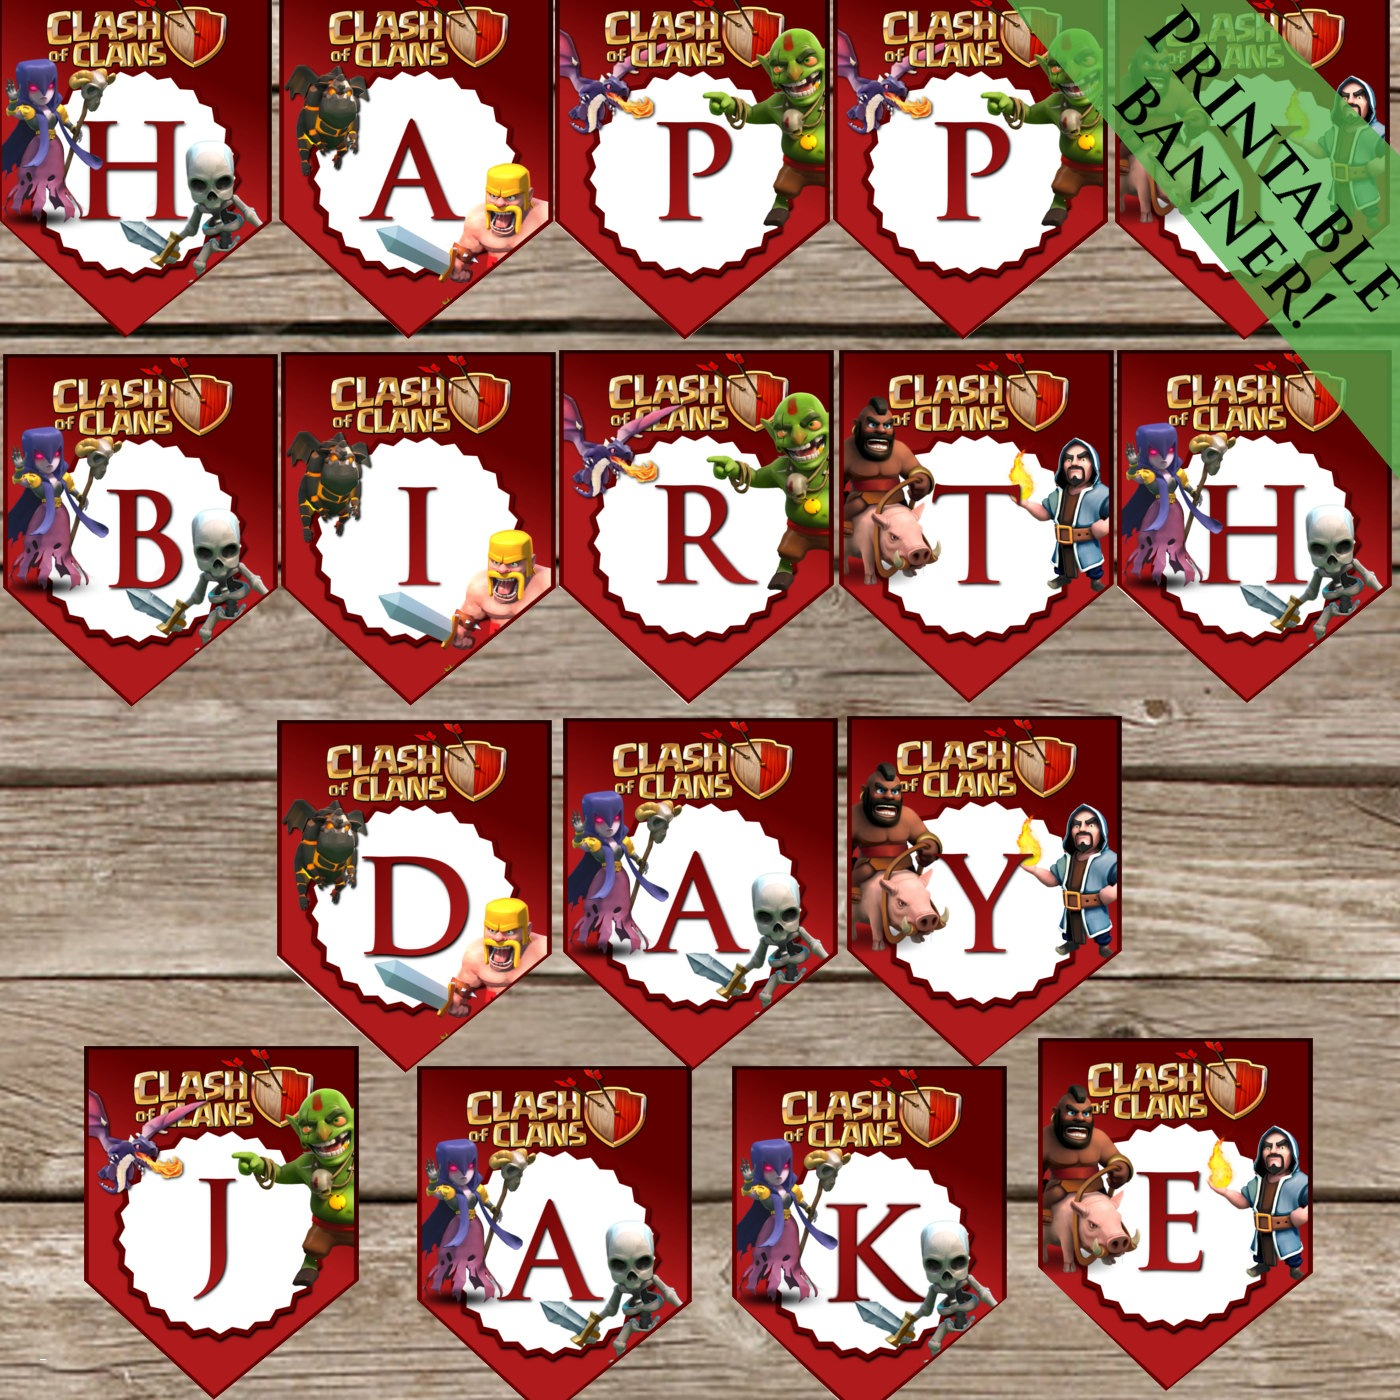 customize your own birthday banner ; design-your-own-birthday-banner-awesome-personalized-clash-of-clans-birthday-banner-printable-party-of-design-your-own-birthday-banner